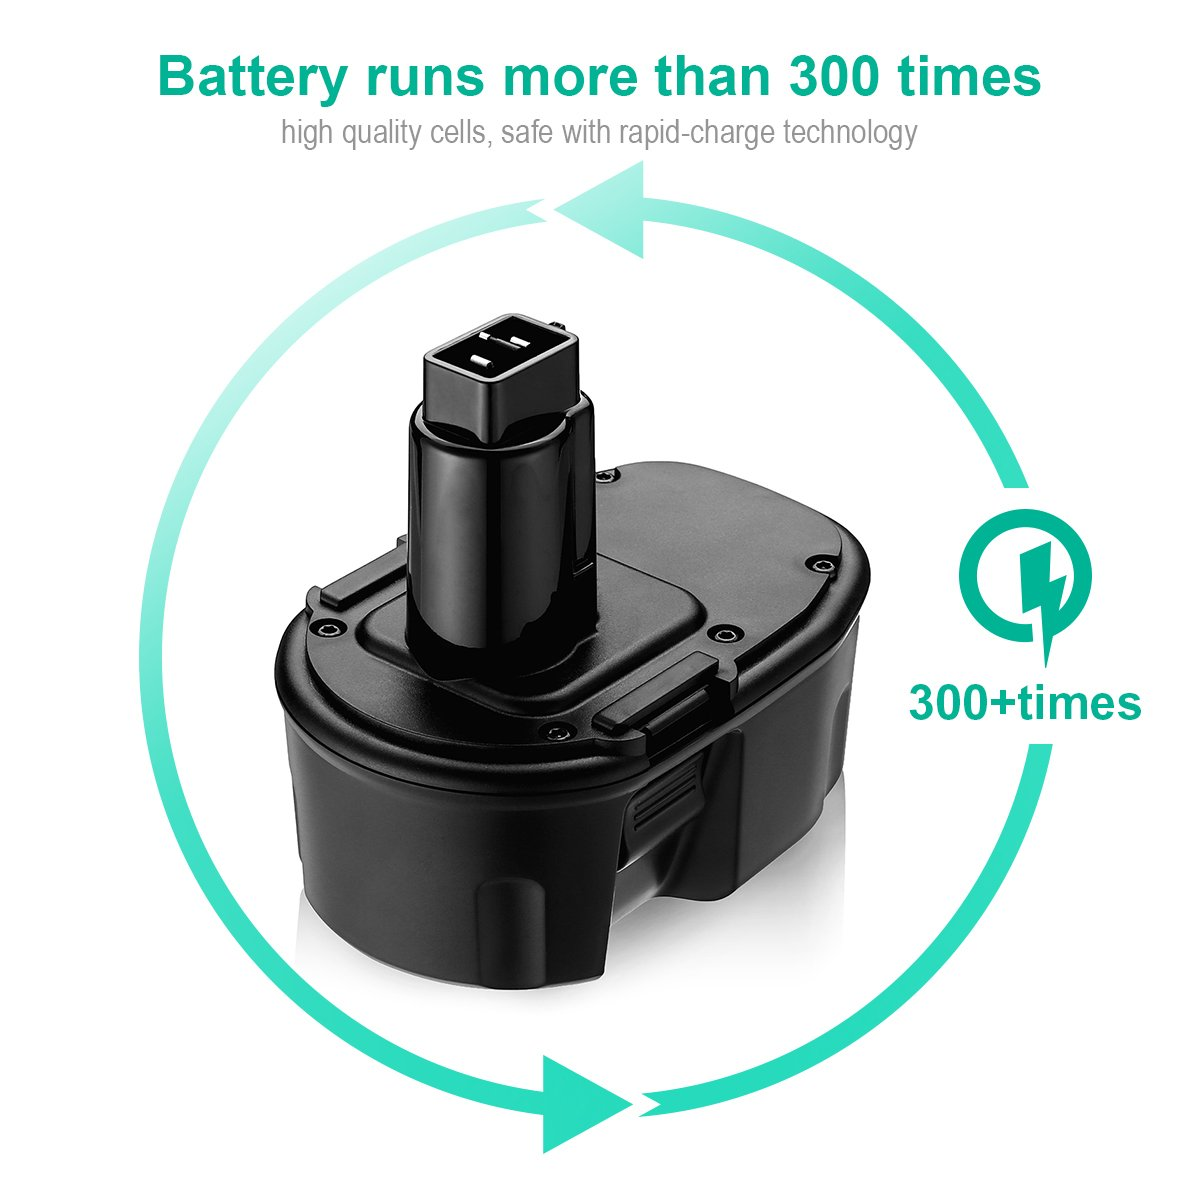 FirstPower 3.5AH 14.4V XRP Battery Replacement for Dewalt DC9091 DW9091 DW9094 DE9038 DE9091 DE9092 DEWALT Power Tool Battery DEWALT XRP DC DW DE Series ( 2 Pack ) by FirstPower (Image #5)